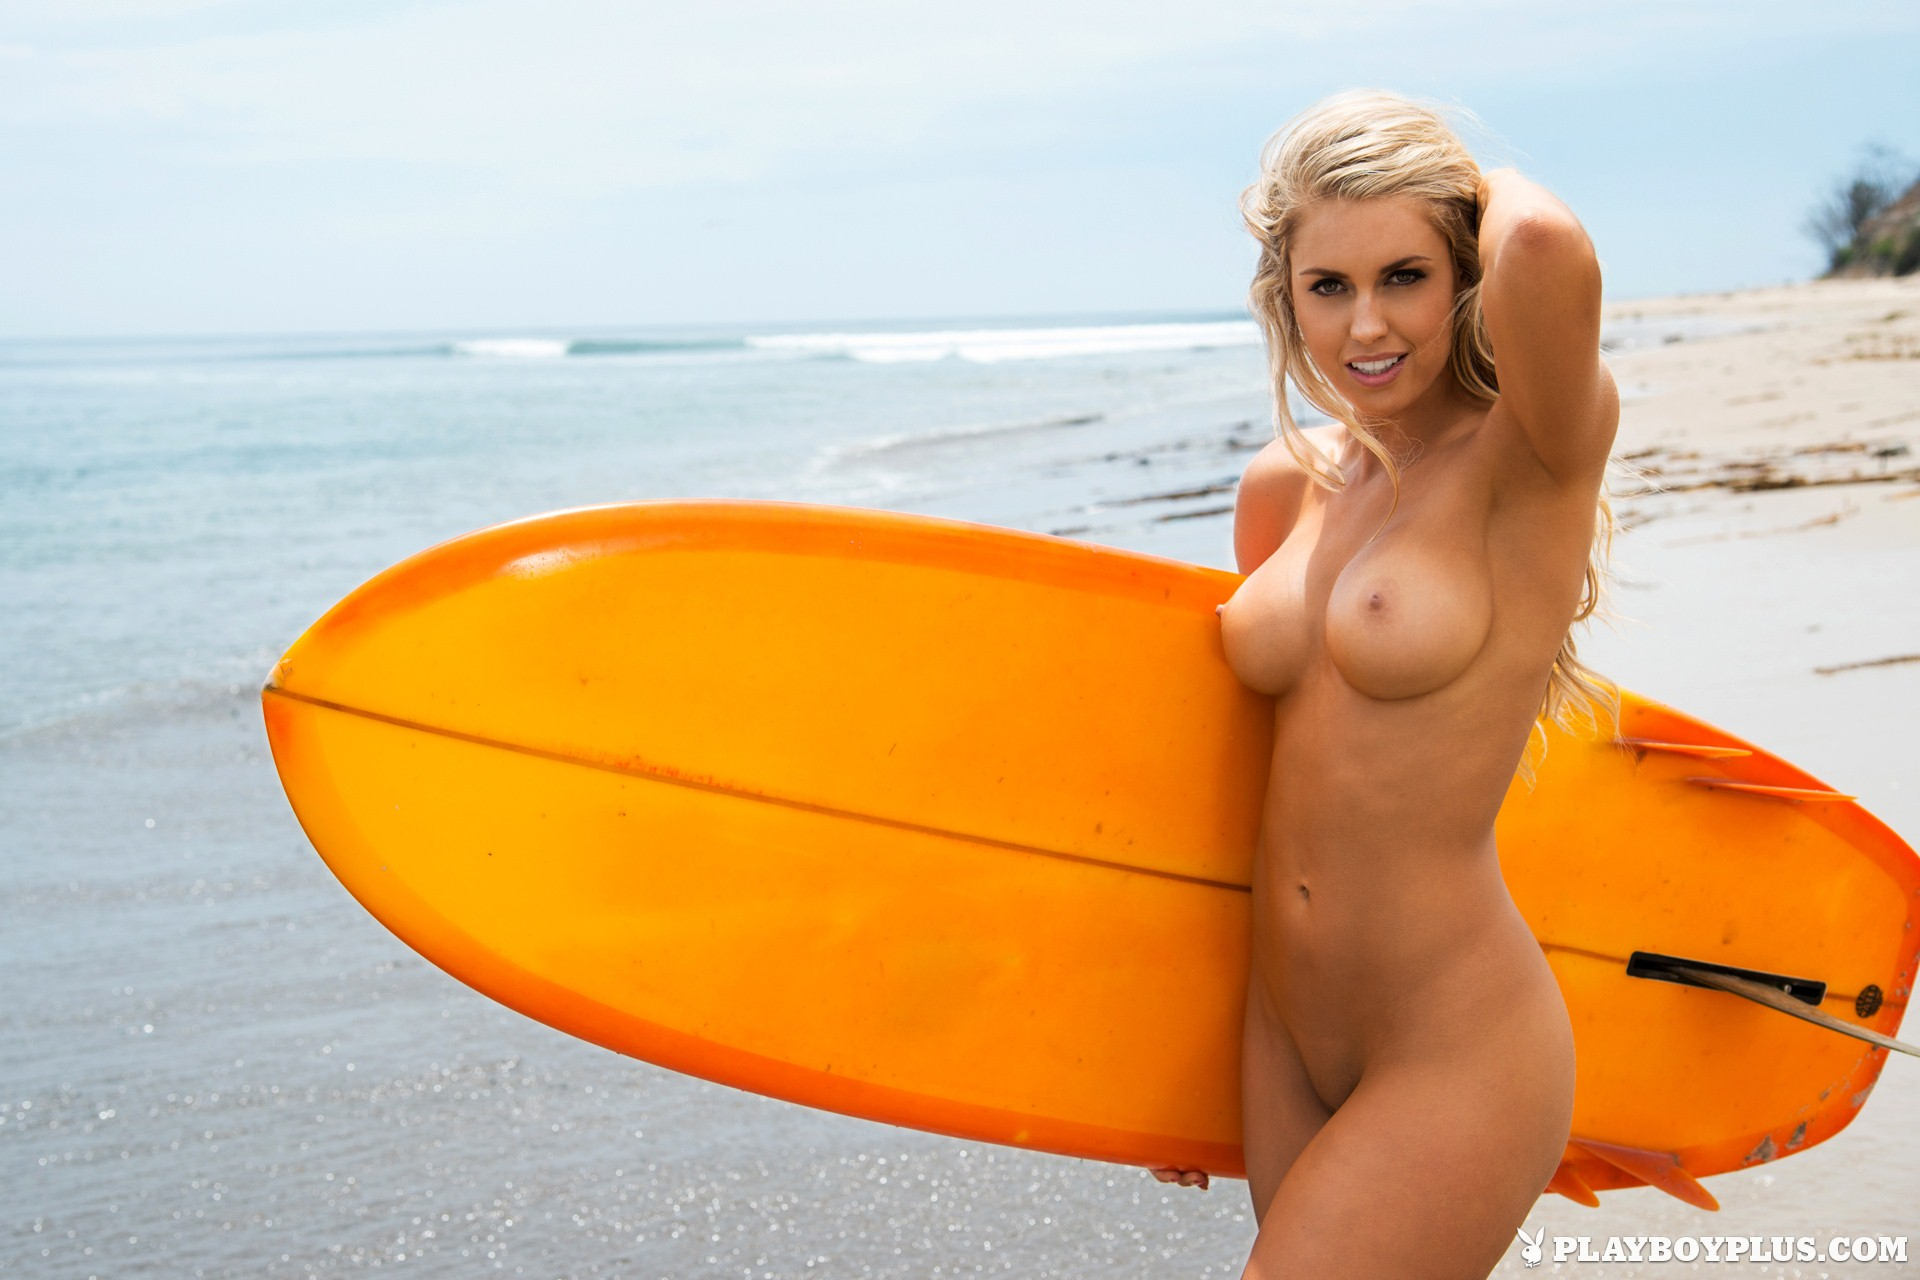 All above nude surfer girl videos are not